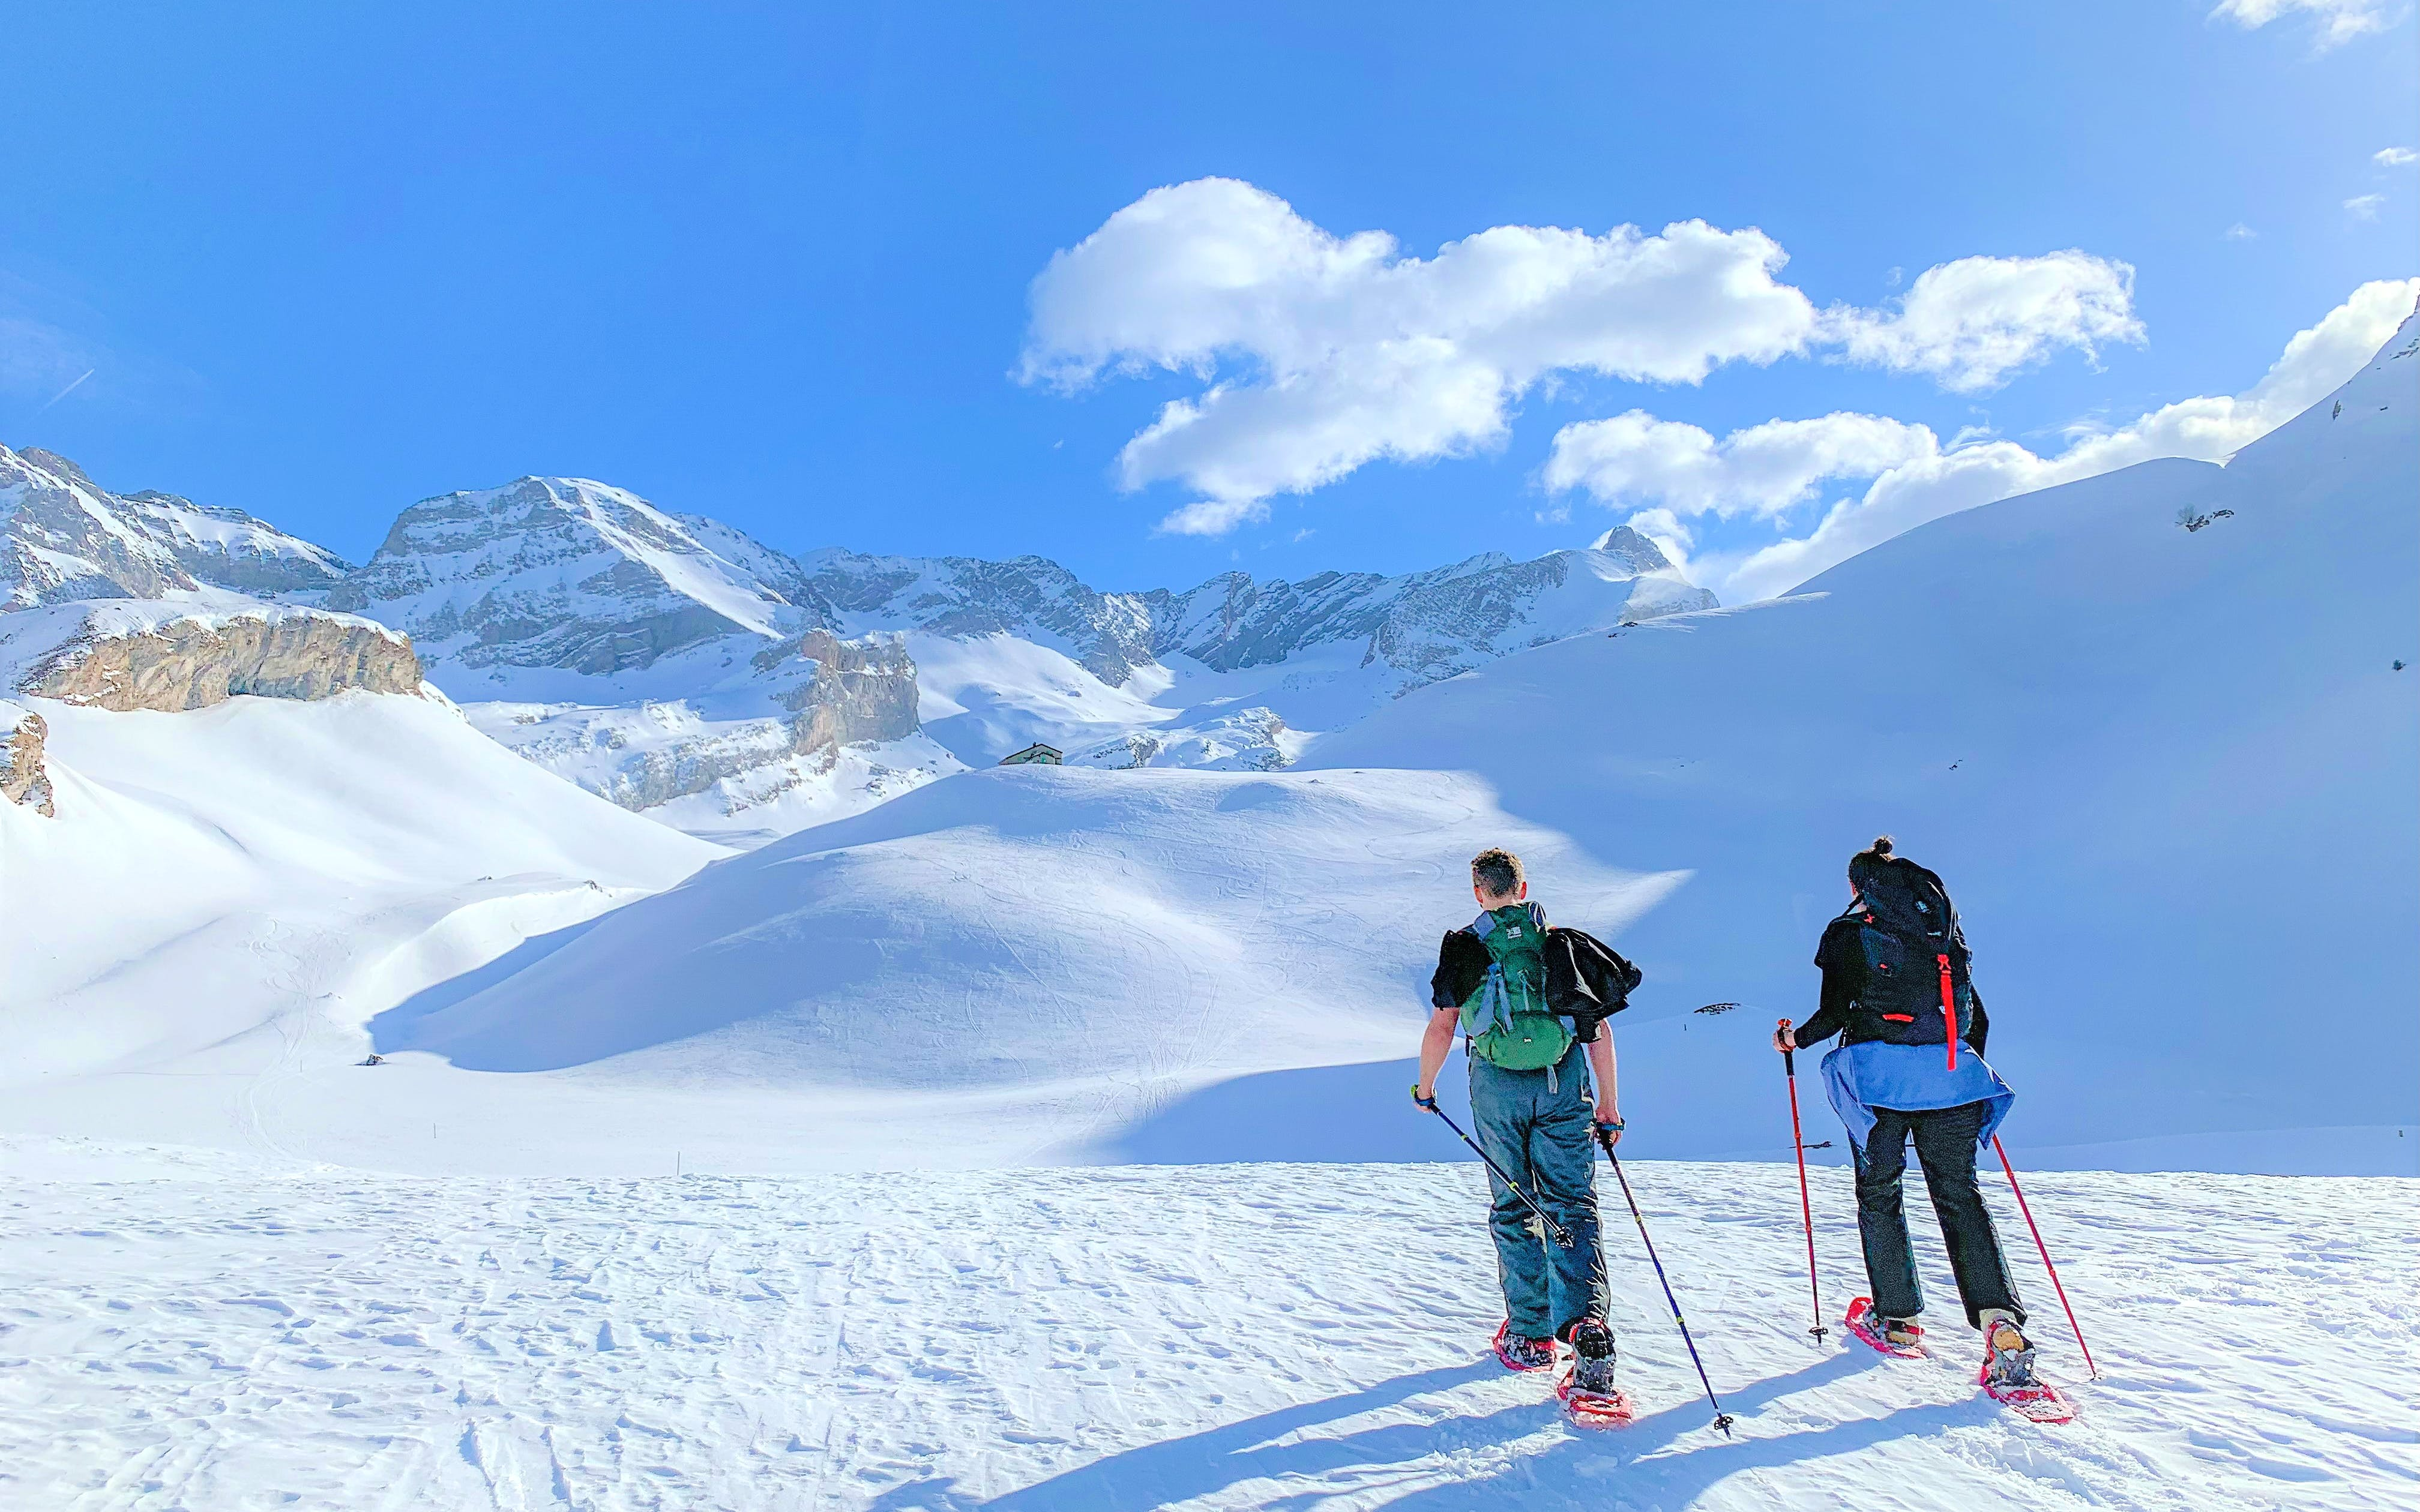 Snowshoeing in the Swiss Alps